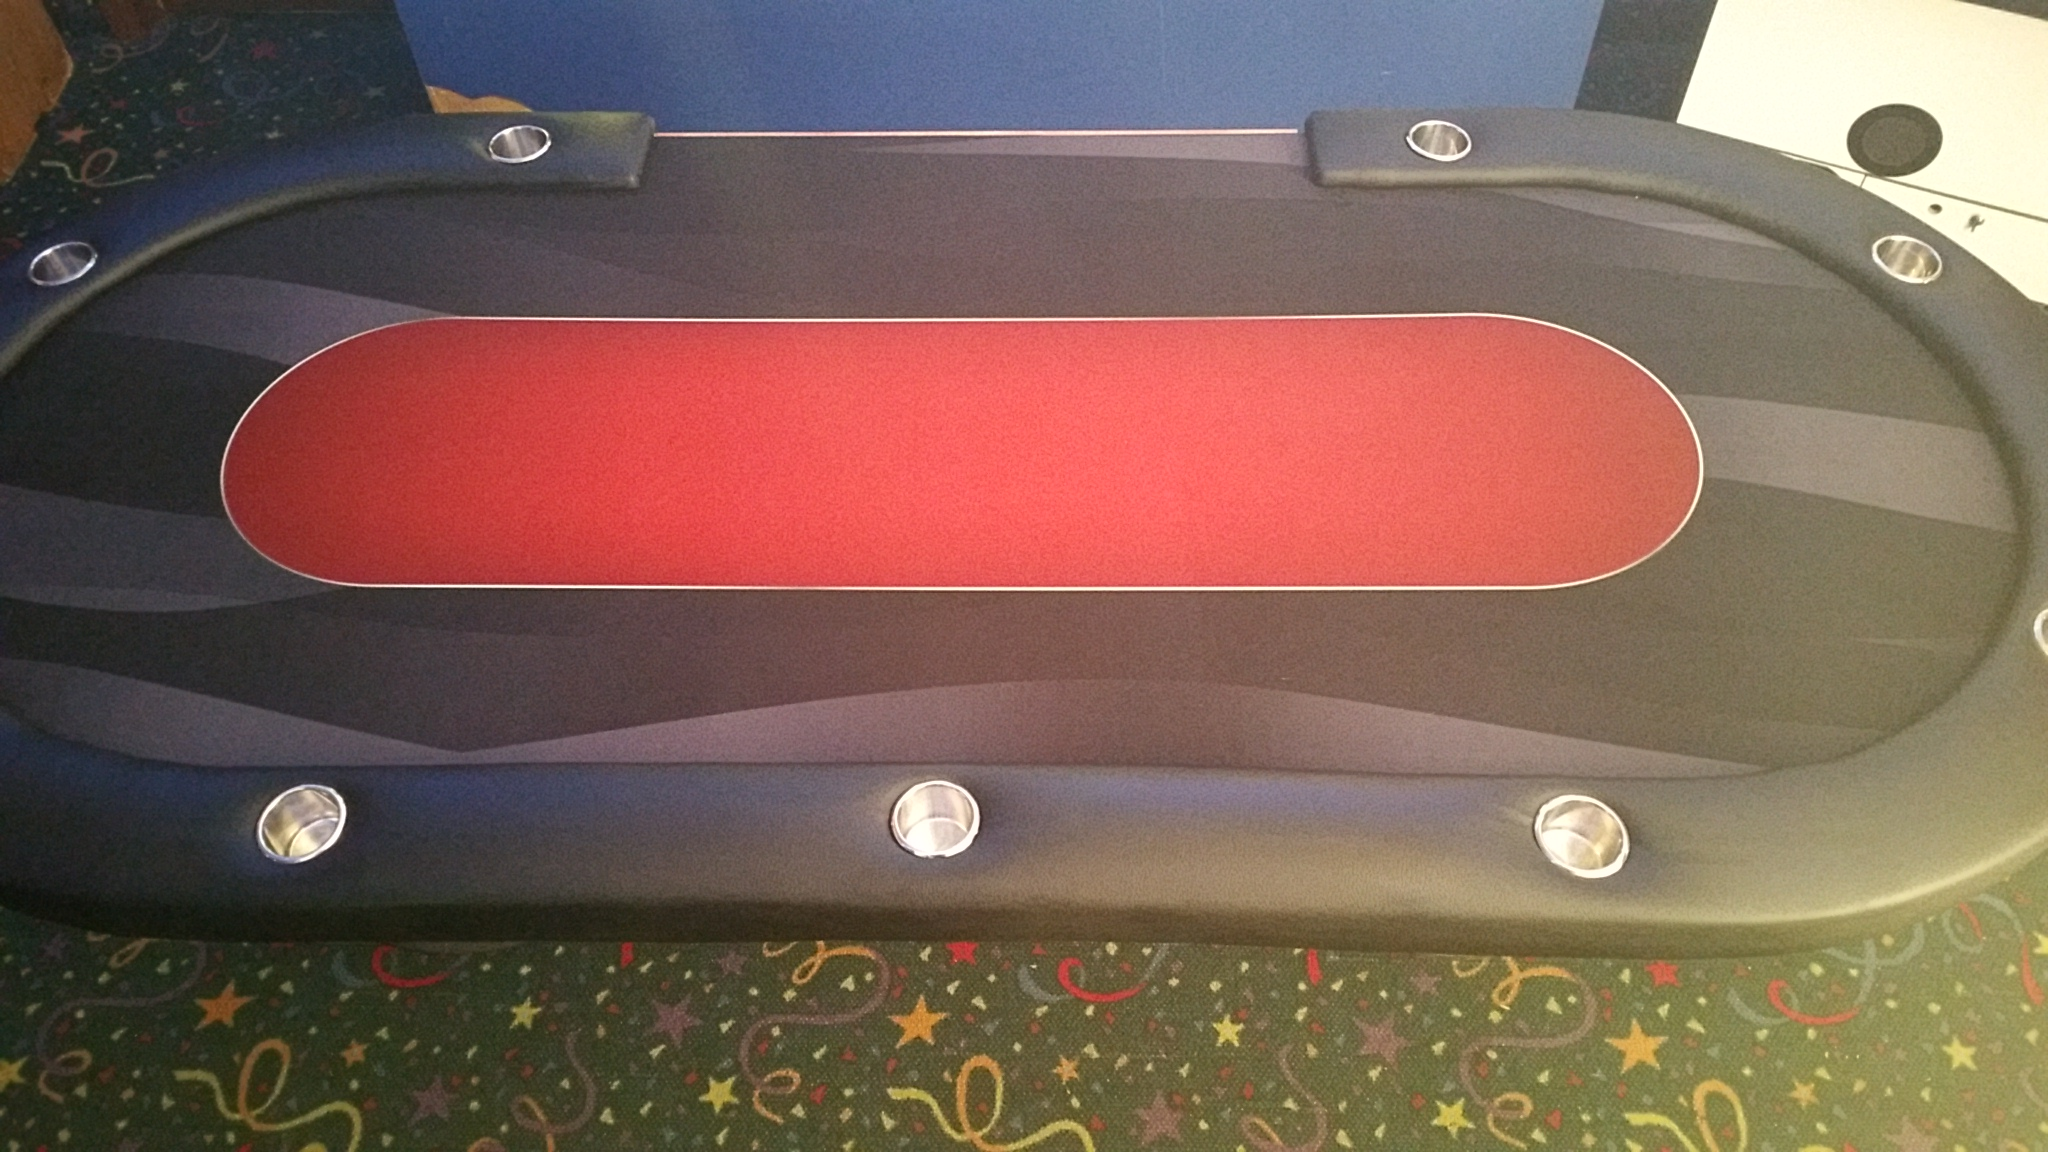 Used Casino Poker Tables 7′, 8′, and 9 Foot with Padded Rail